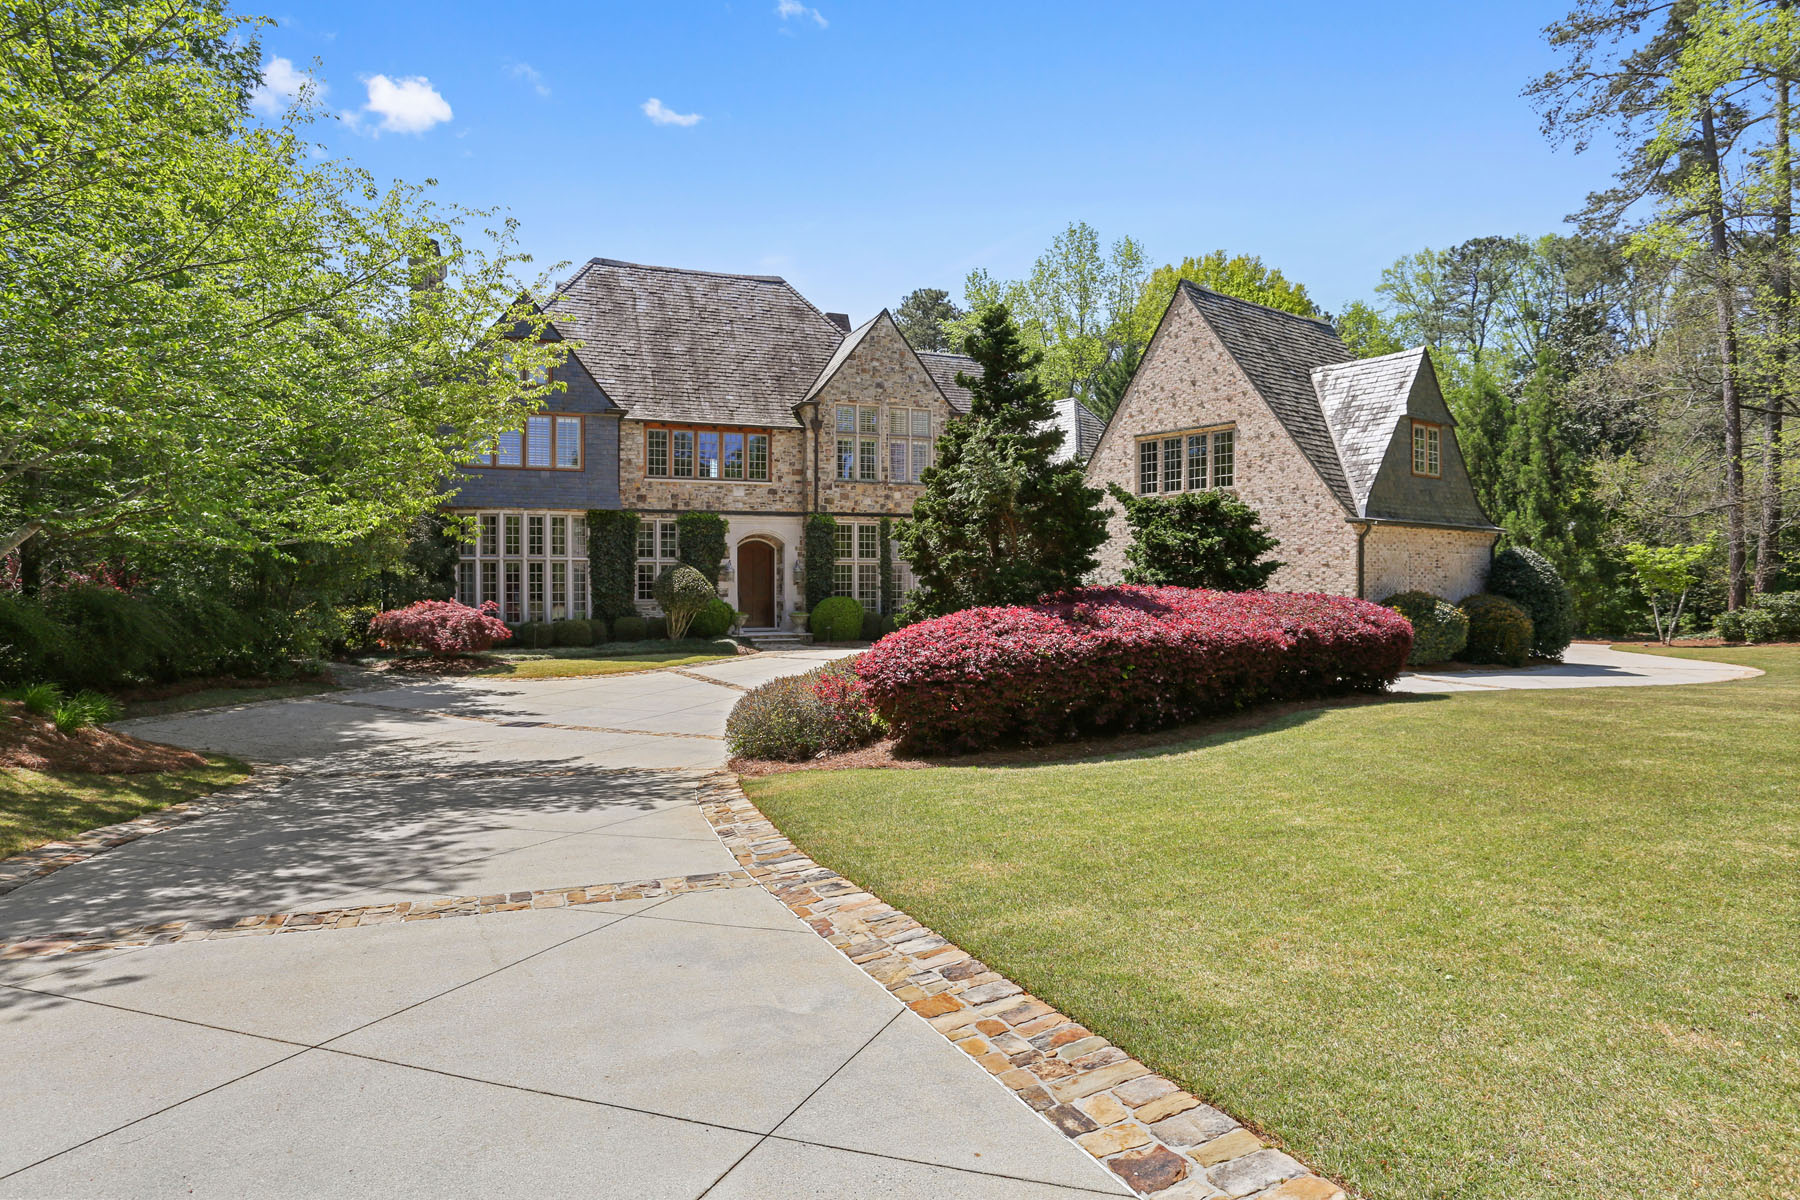 Single Family Home for Sale at Enchanting European-inspired Estate 4250 Paper Mill Rd Marietta, Georgia 30067 United States